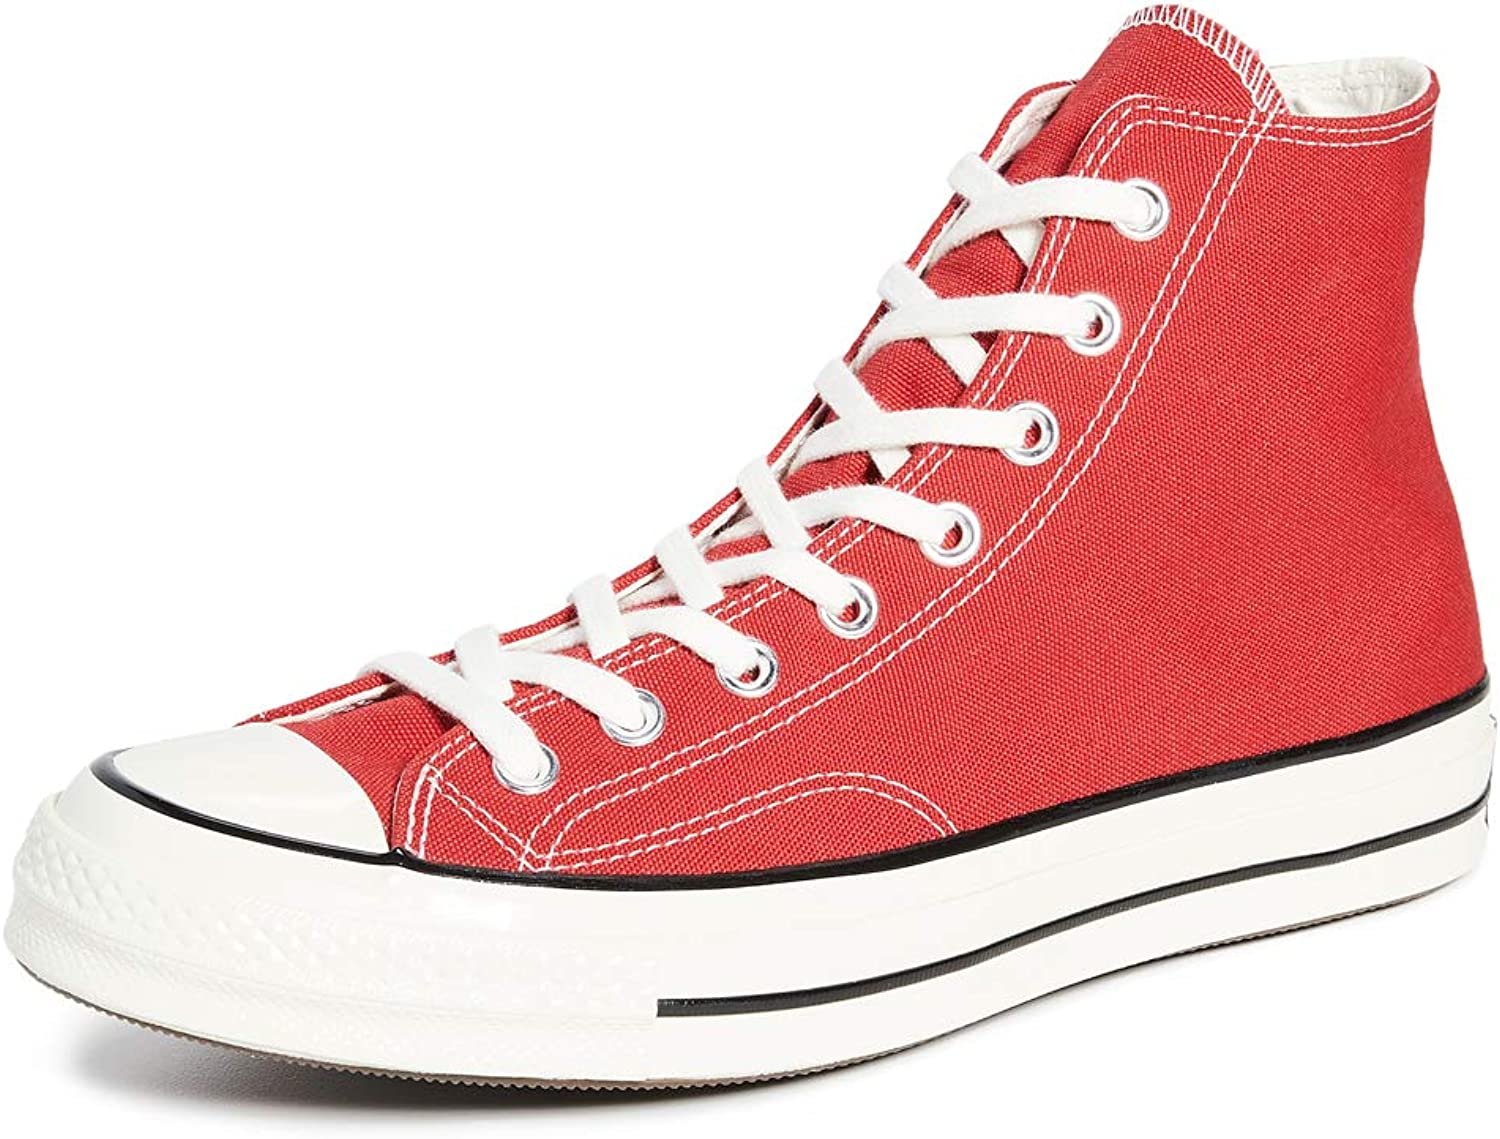 Converse Men's Chuck Taylor All Limited time trial price Omaha Mall High Top Star Sneakers '70s